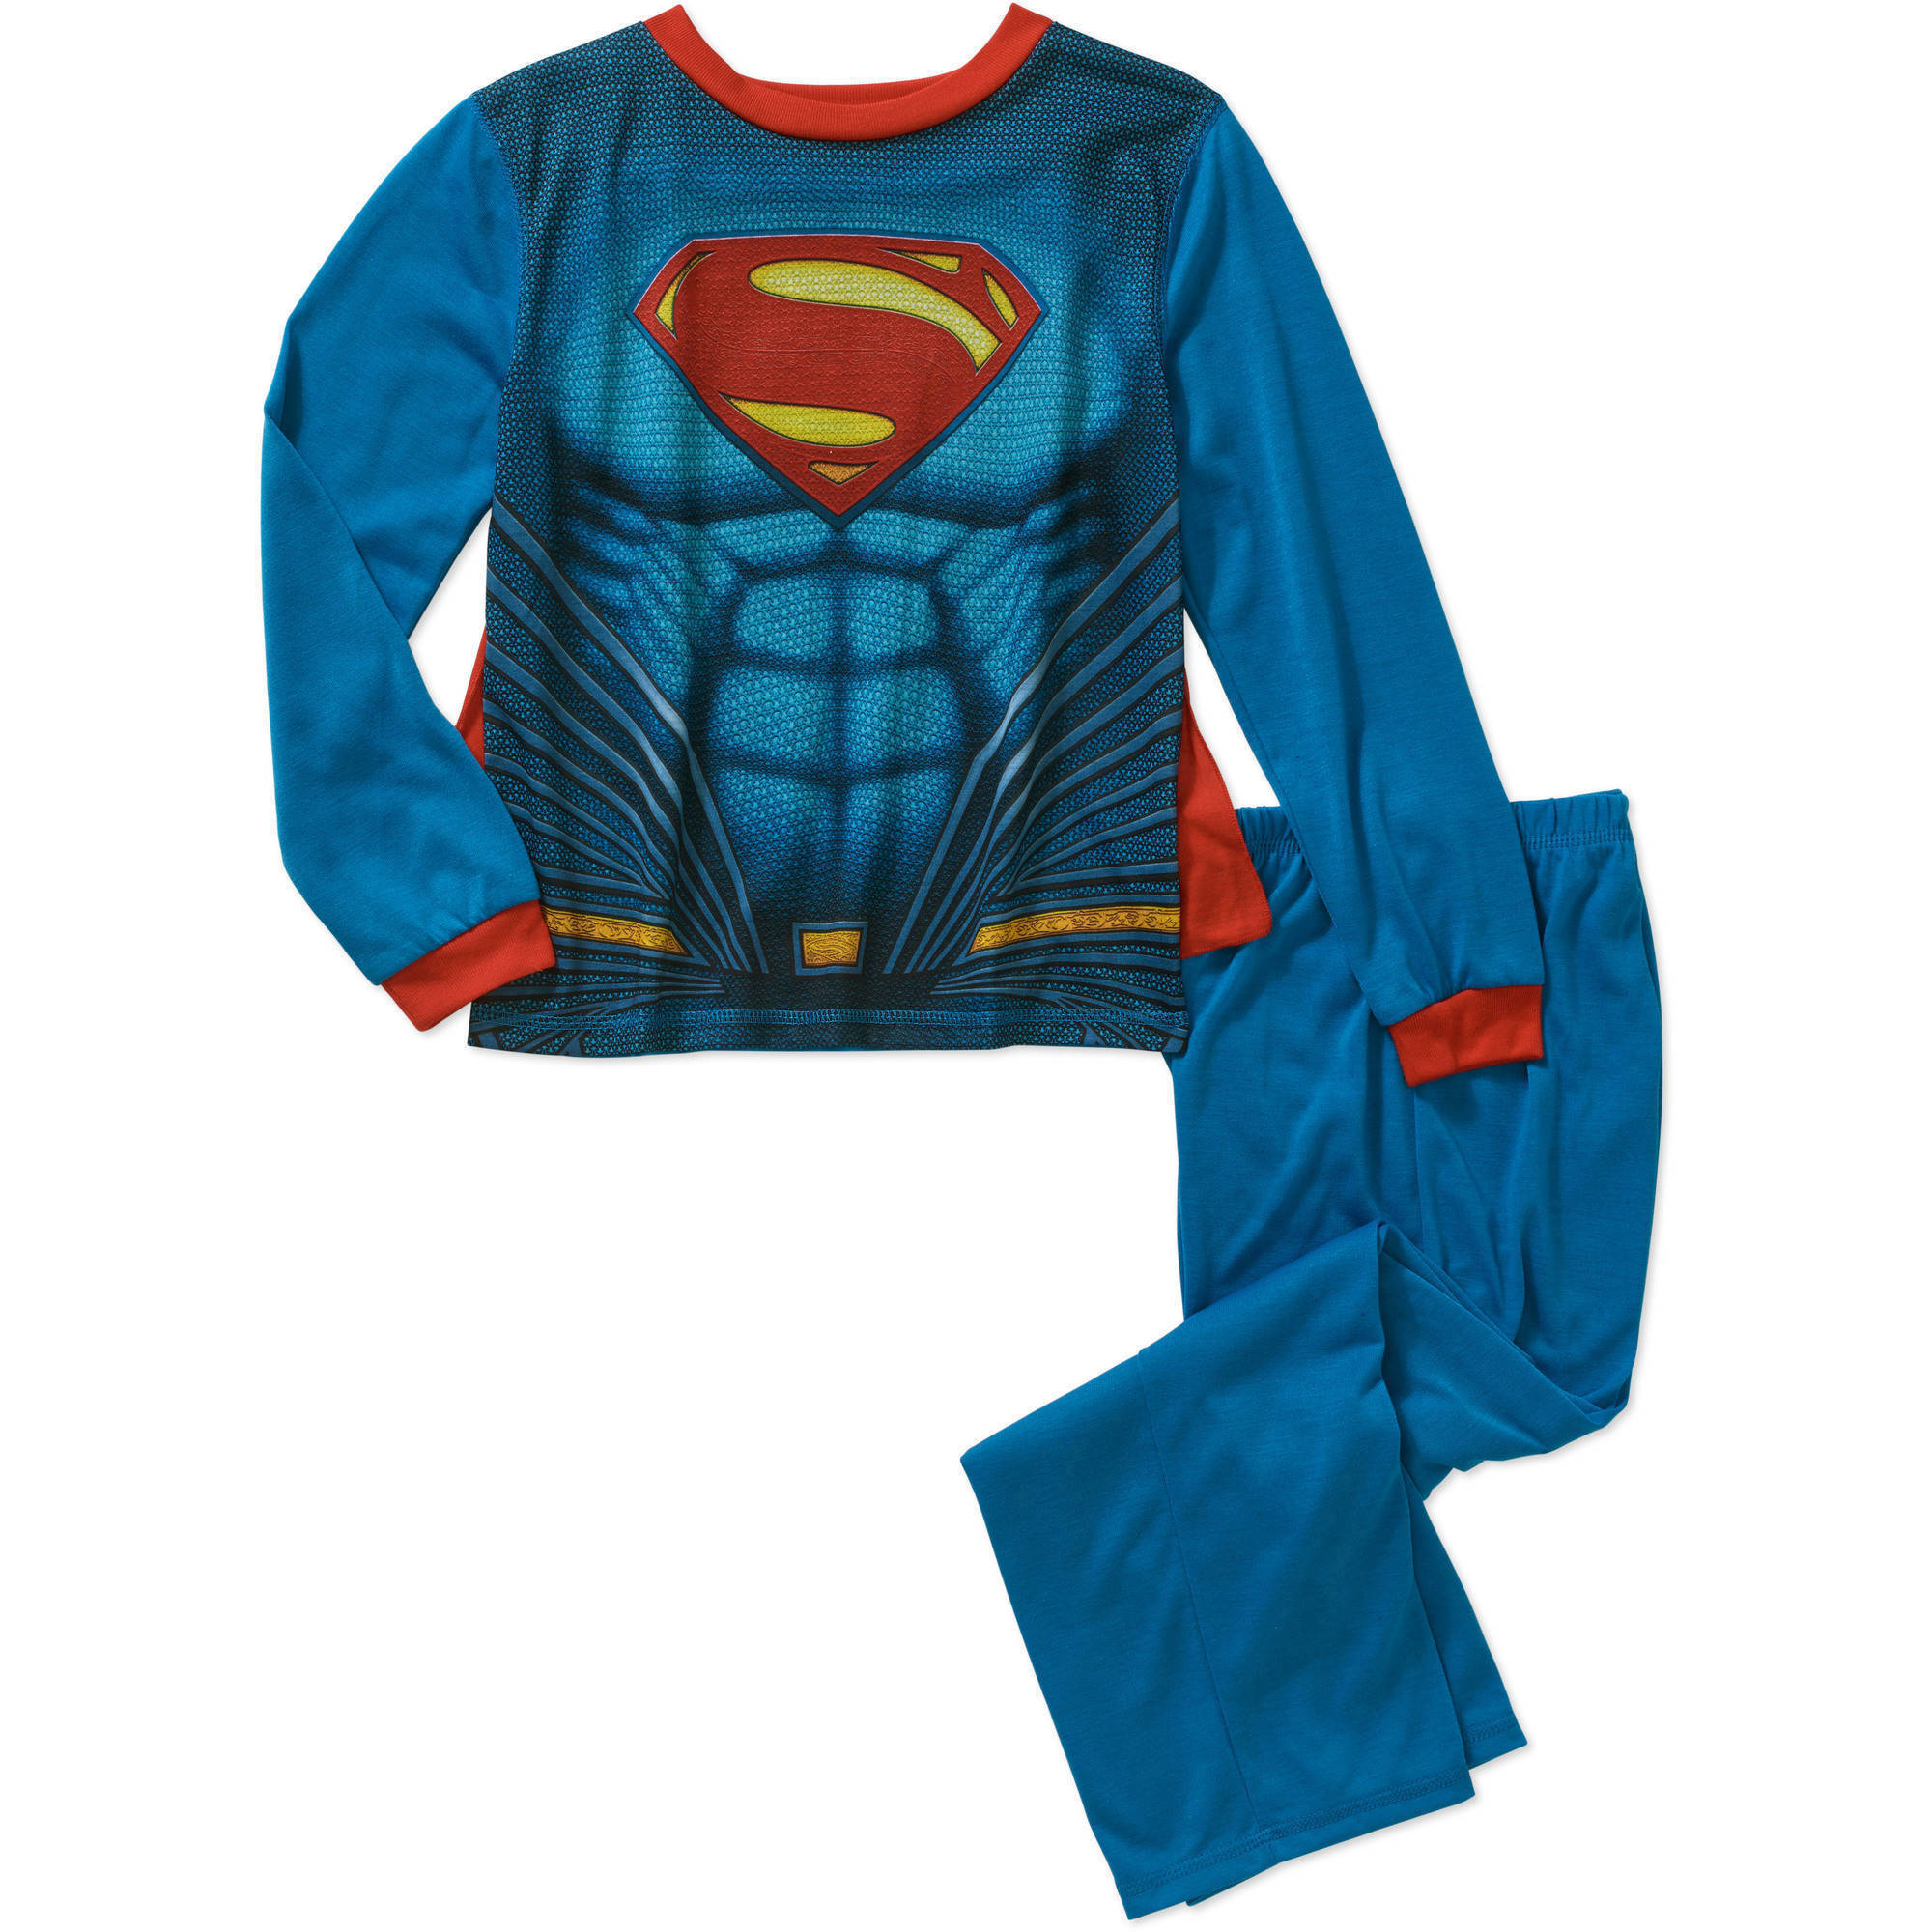 DC Comics Boys' Licensed Pajama Sleepwear Set with Cape, Available in Batman and Superman